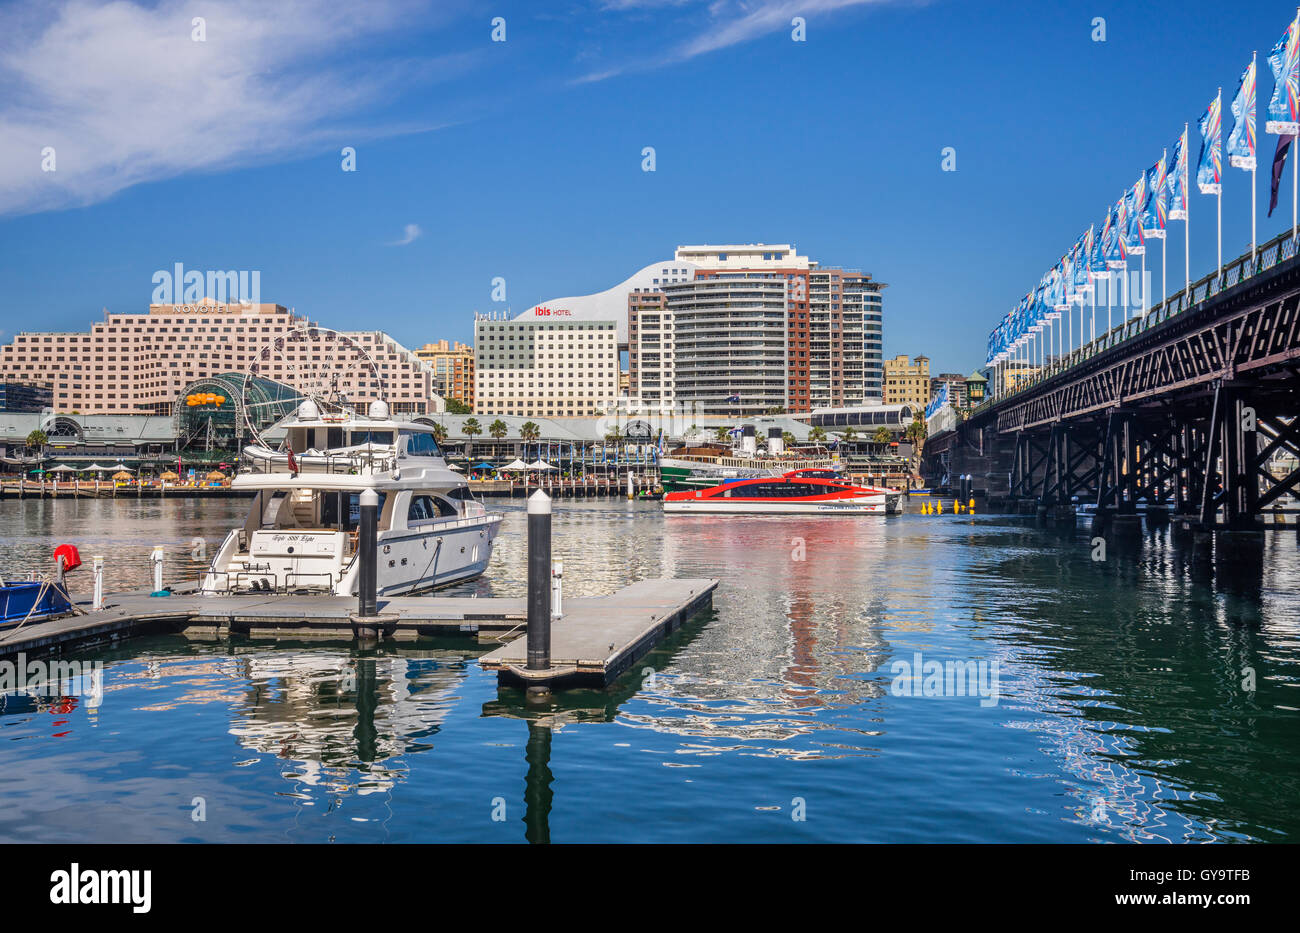 L'Australie, New South Wales, Sydney, Darling Harbour, vue sur le complexe et Pyrmont Bridge Harbourside Photo Stock